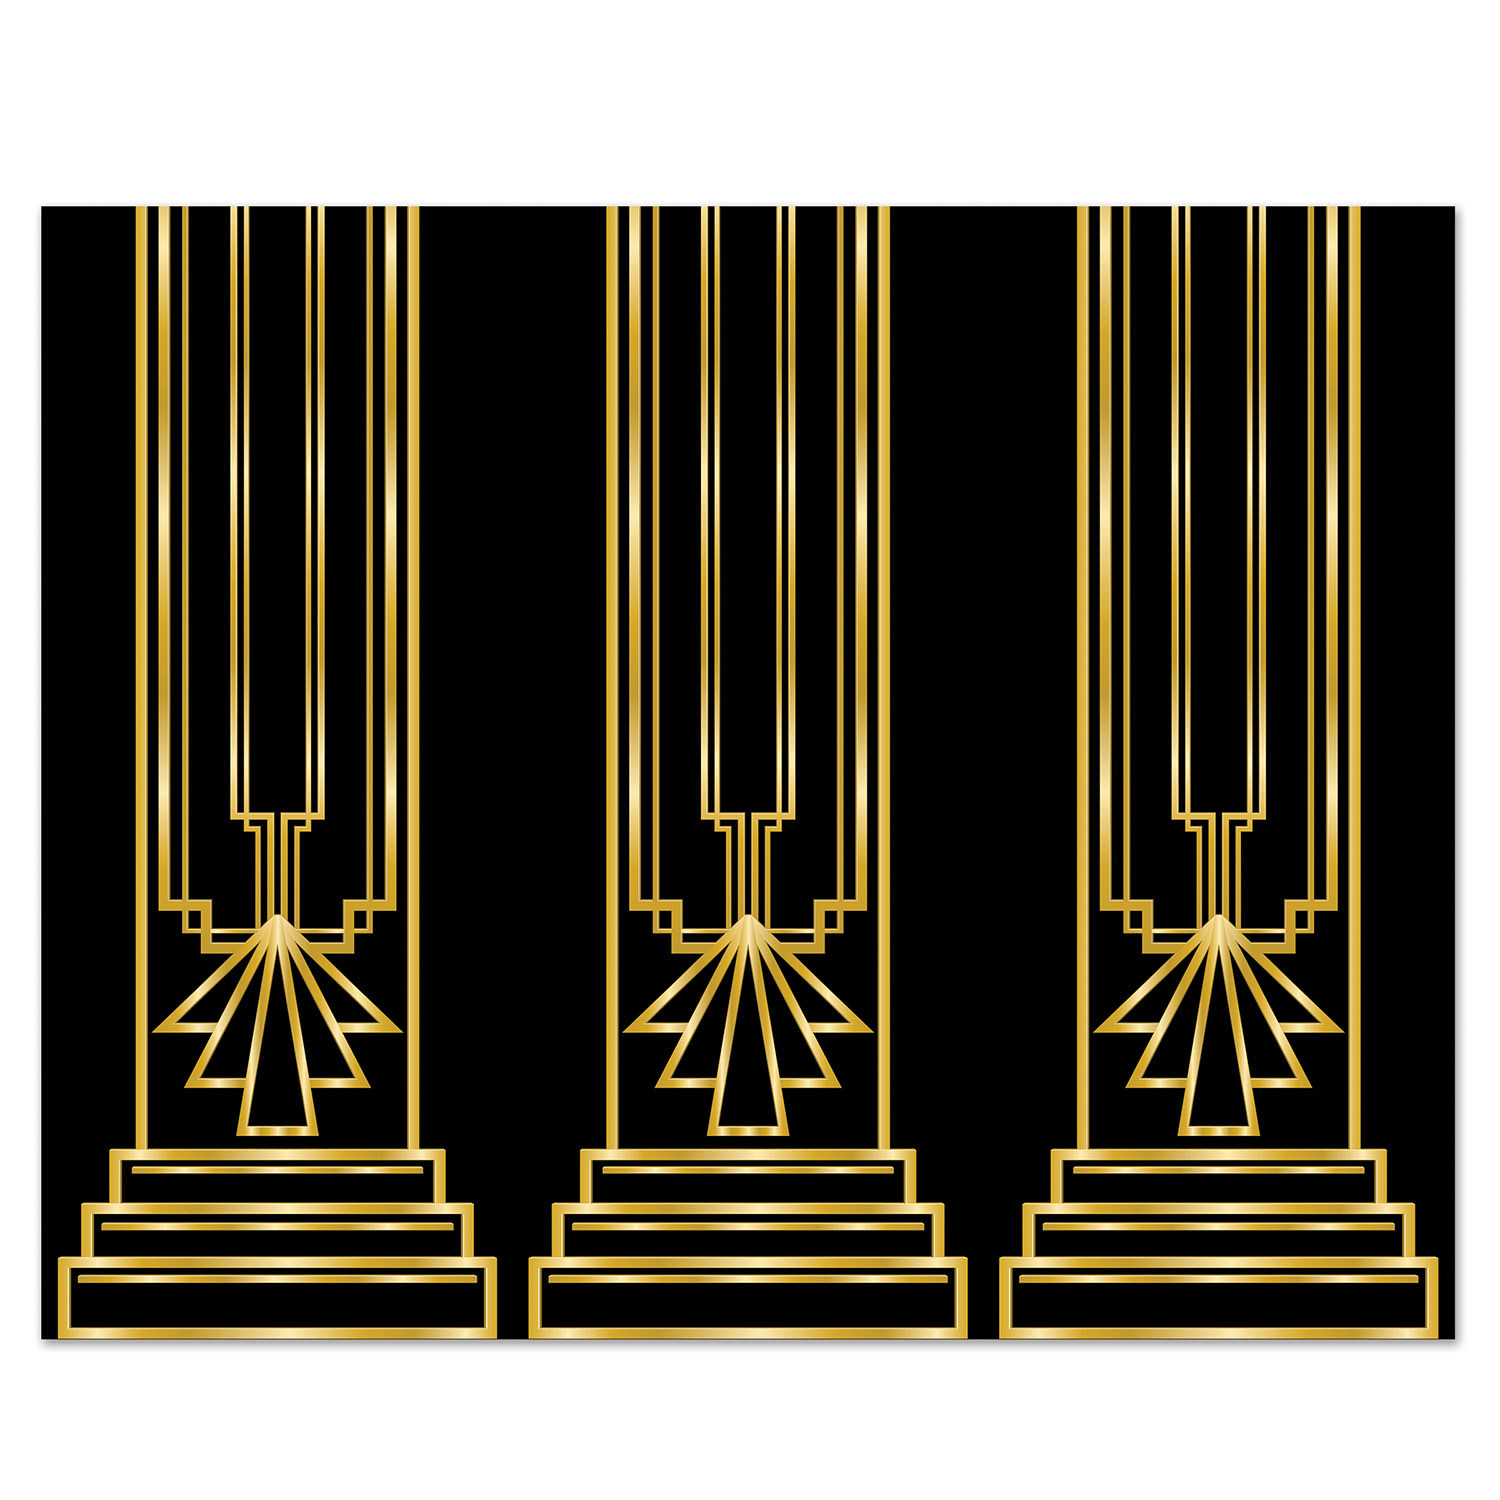 Wall back drop with a black back ground and gold outlined columns.